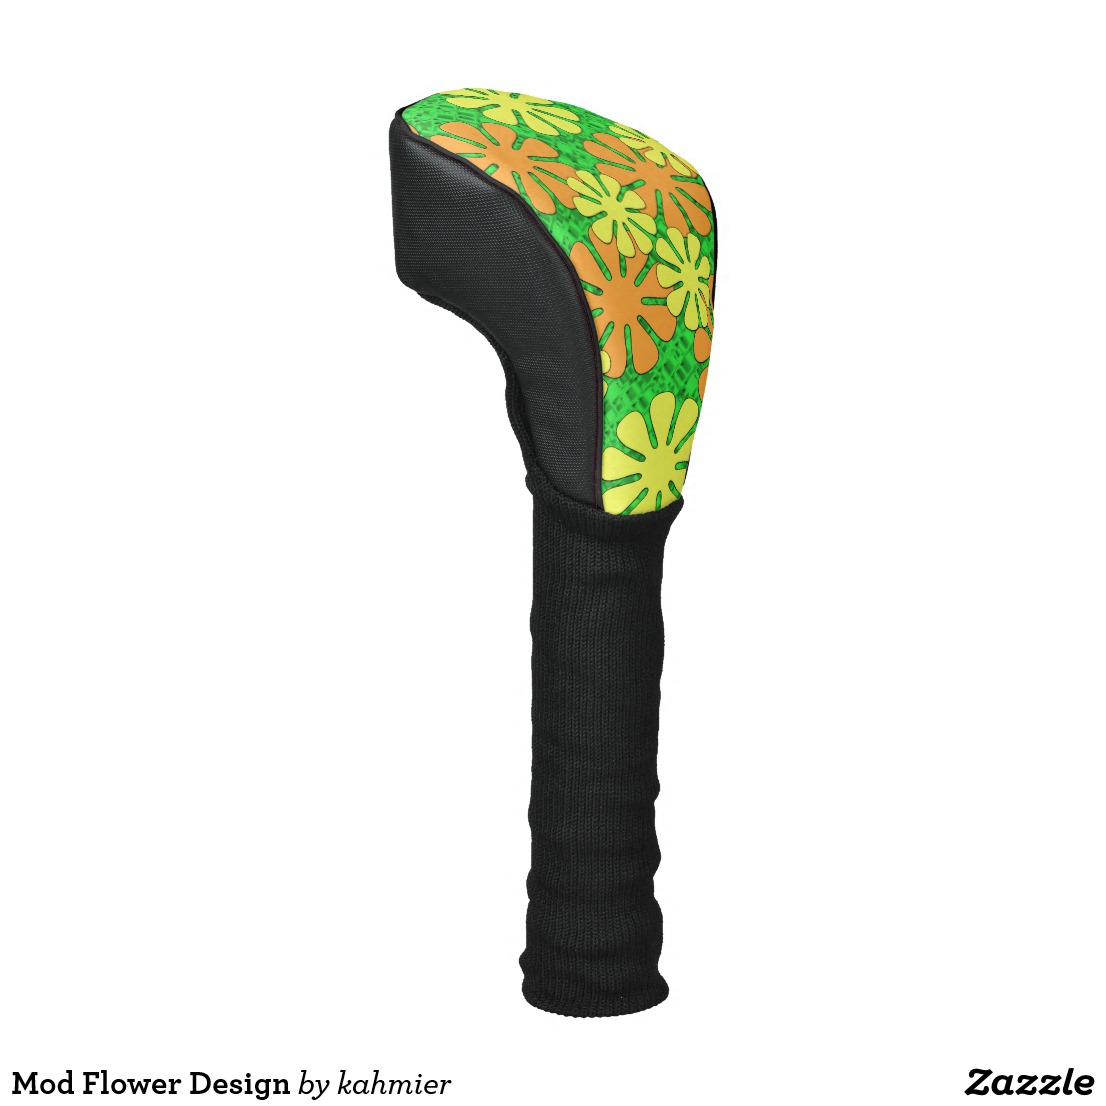 Mod Flower Design Golf Head Cover